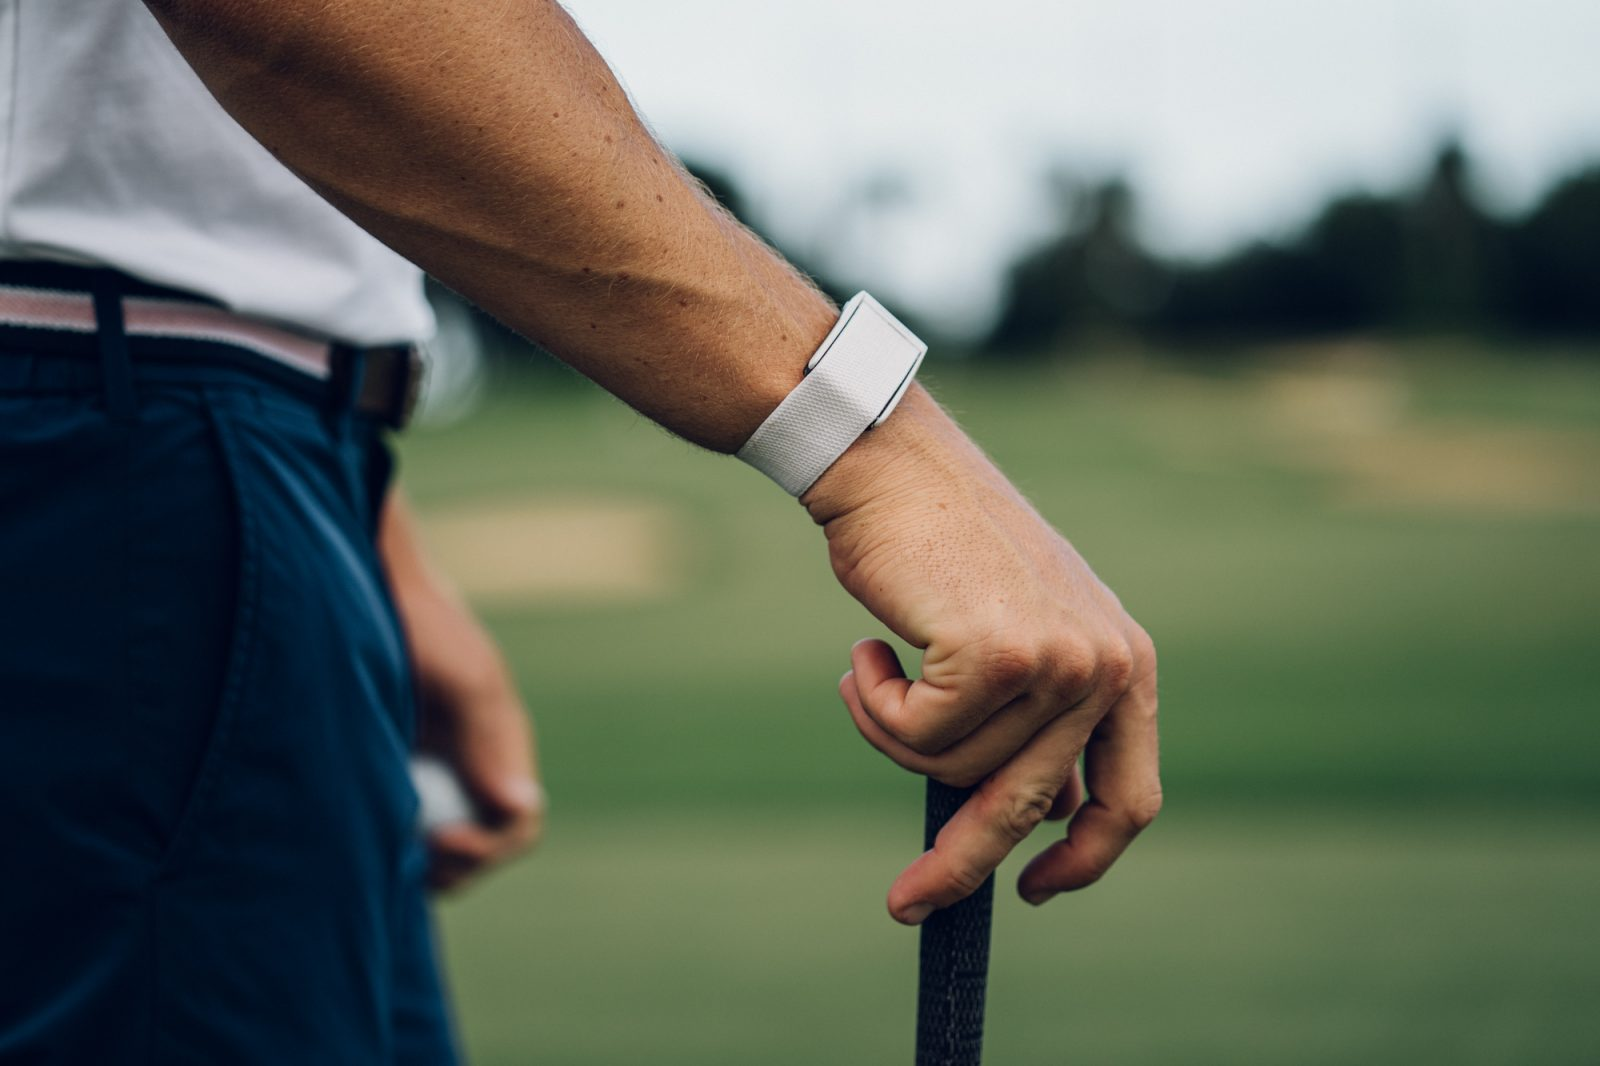 Whoop golf watch featured in the nashville edit